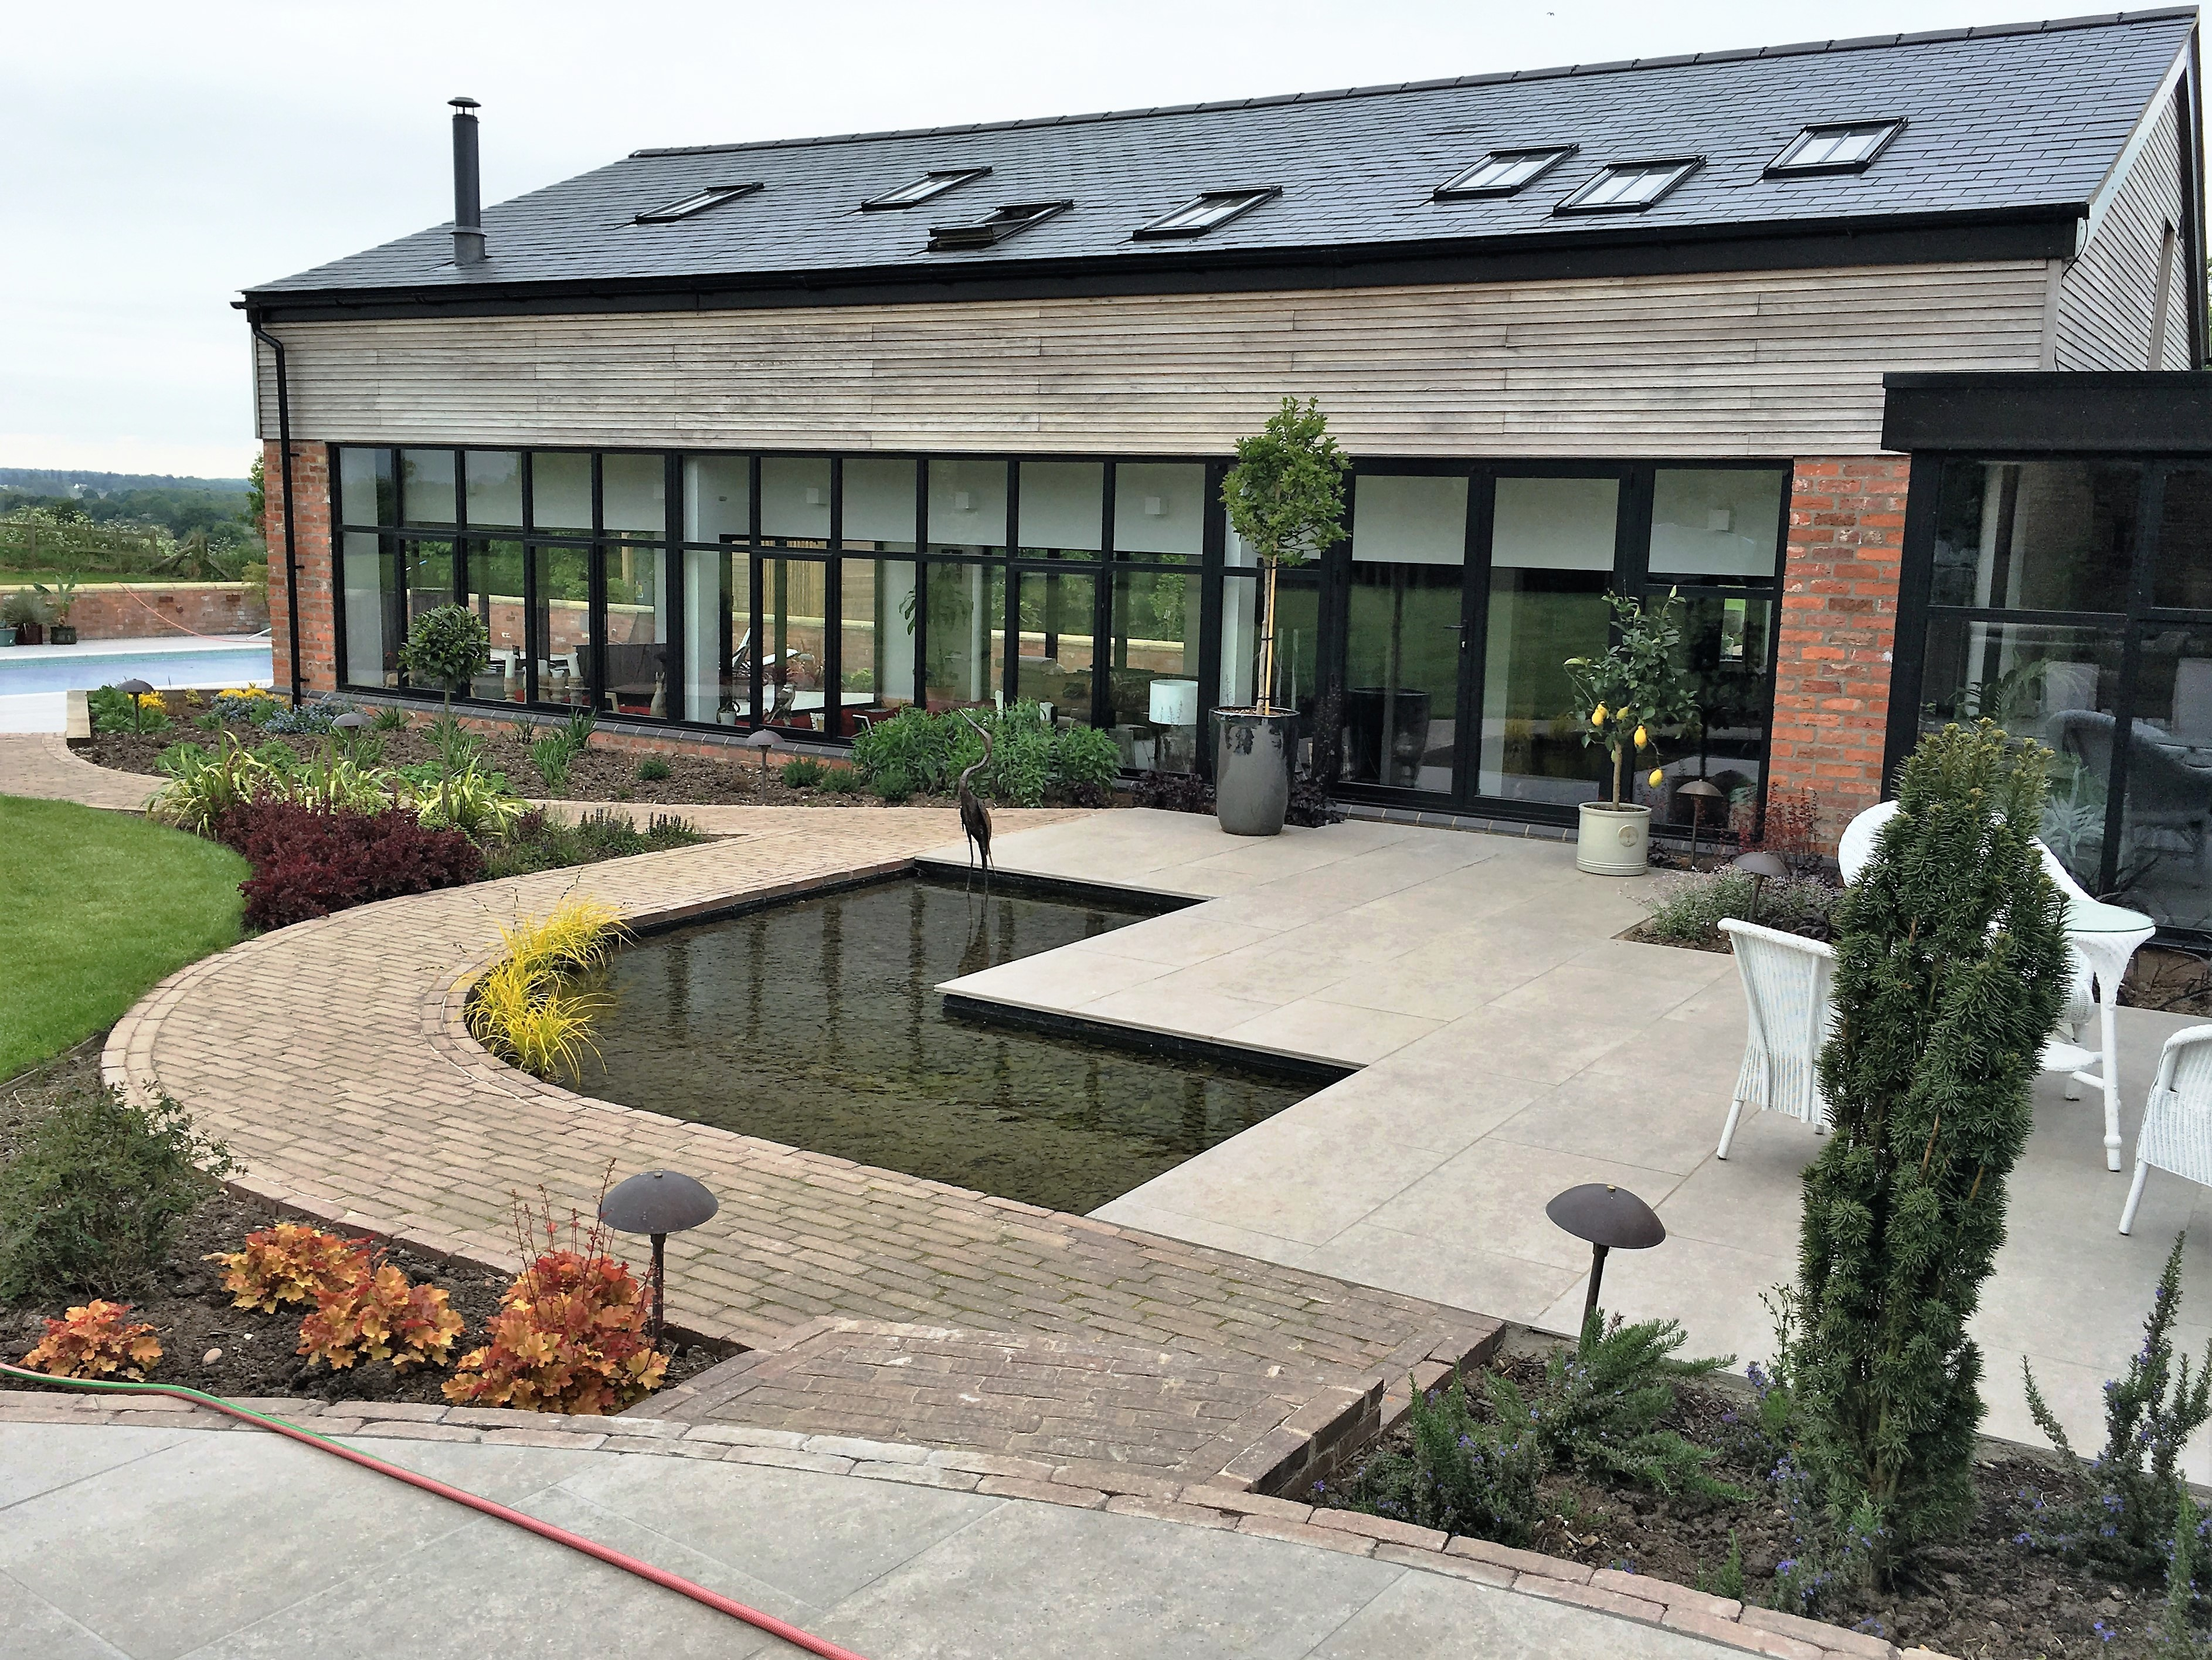 Barn conversion in Leicestershire L-shaped pond terrace